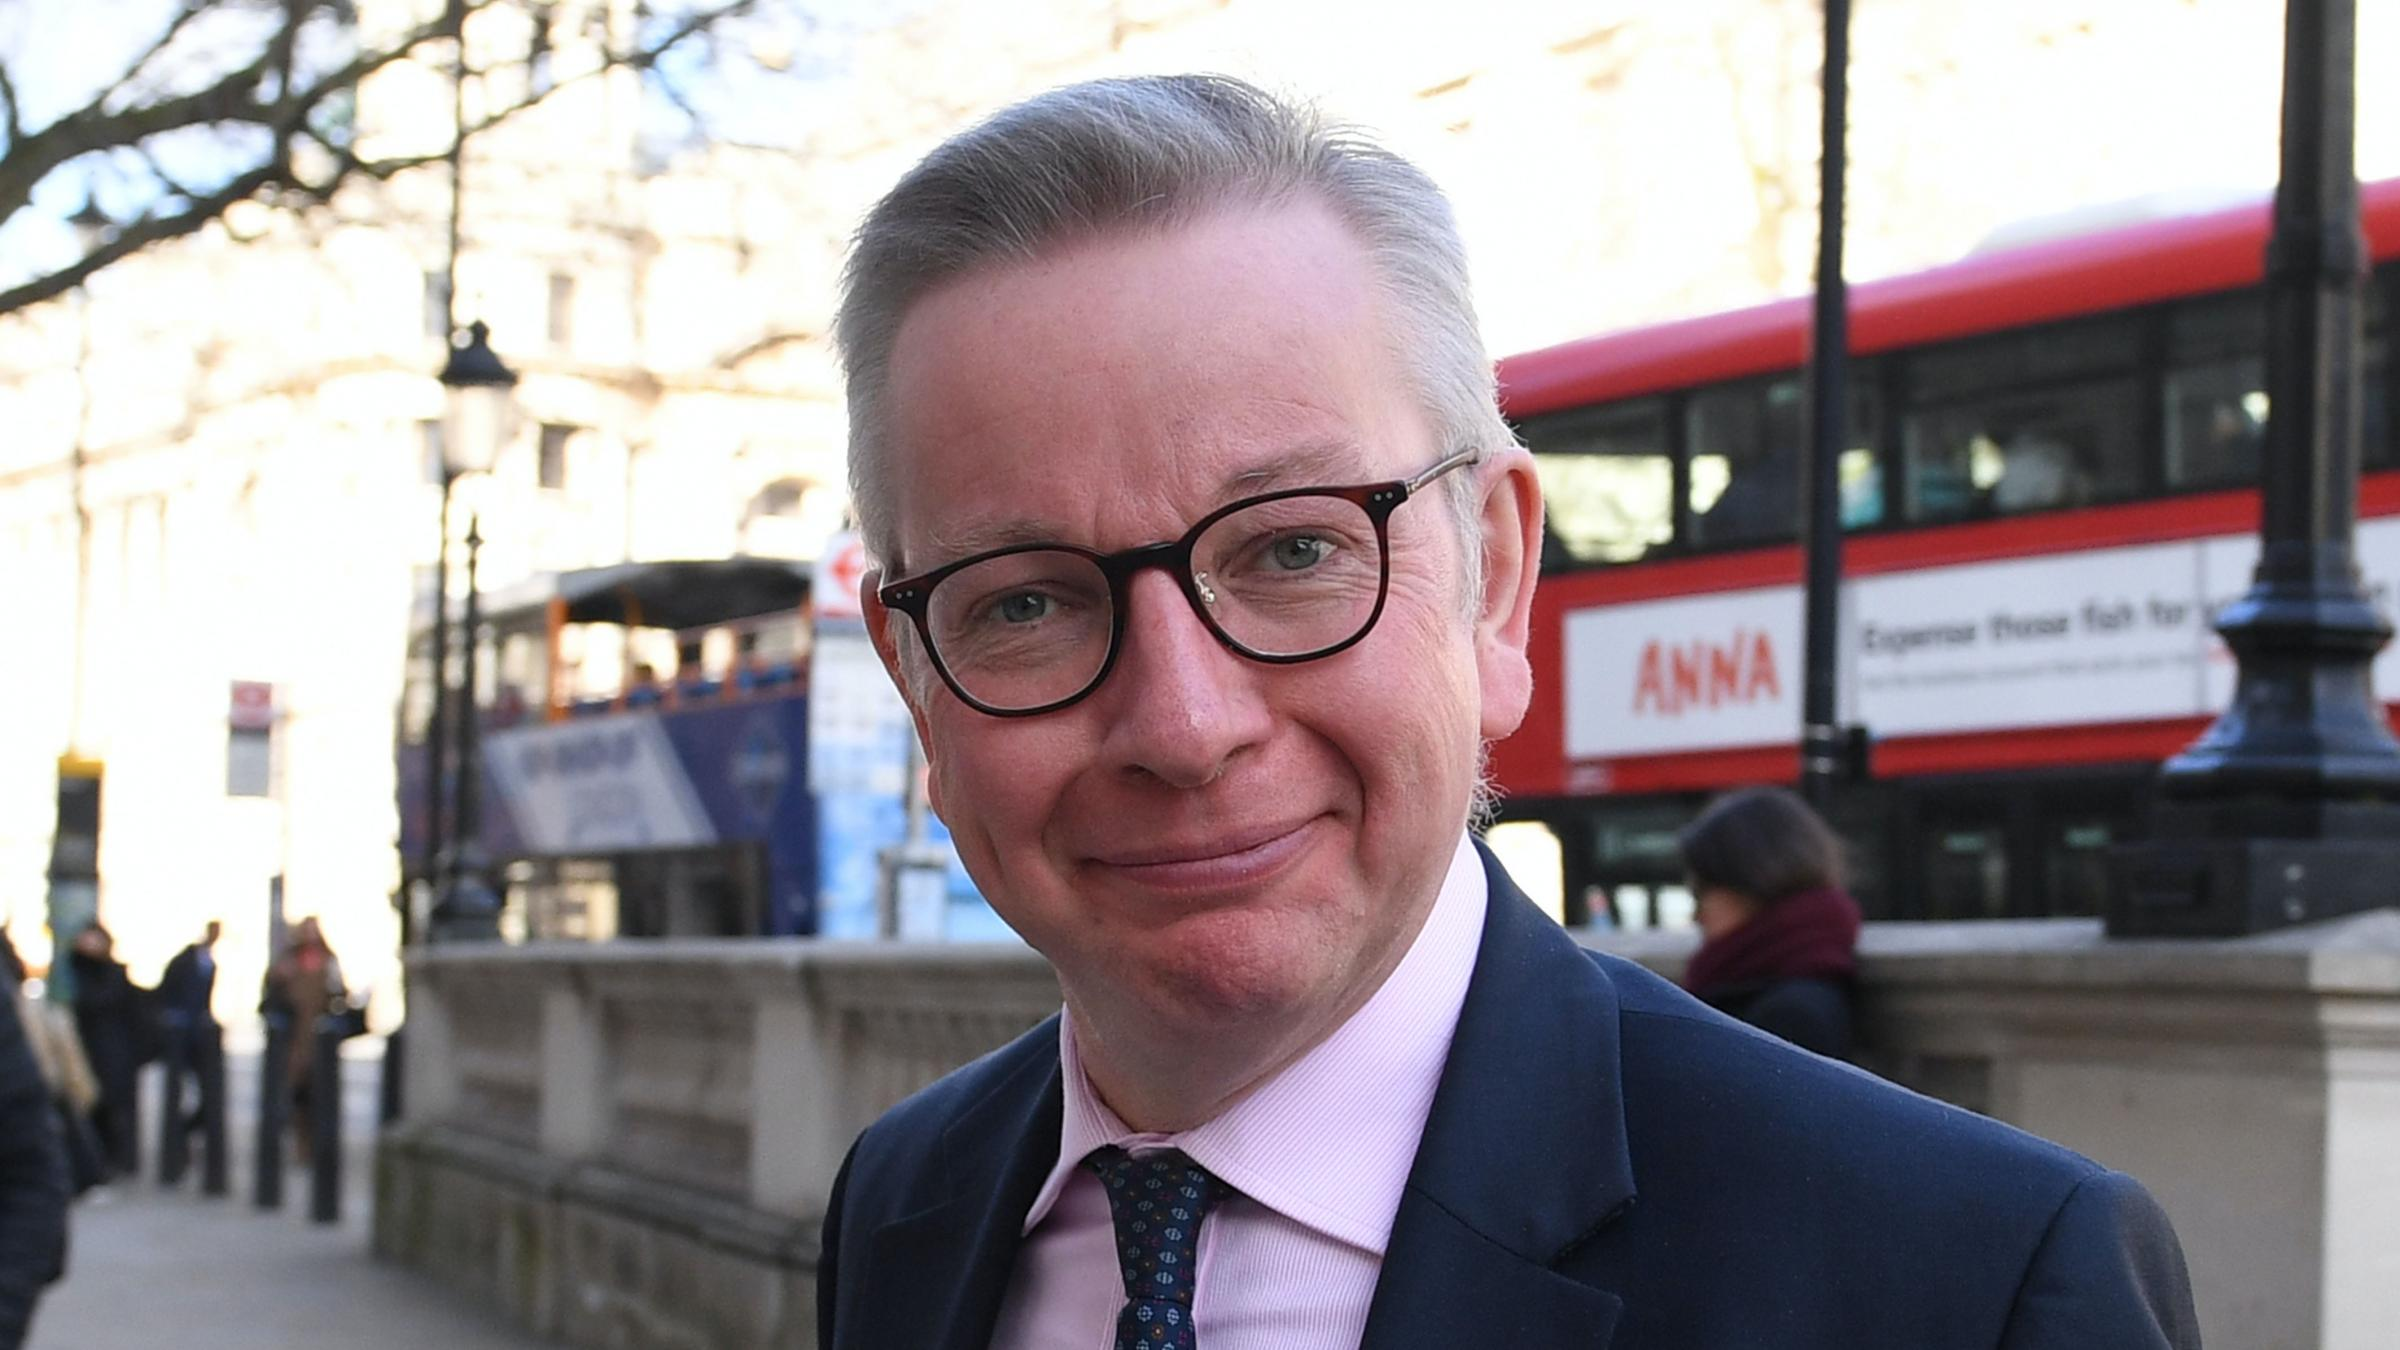 Brexit: Michael Gove warns of